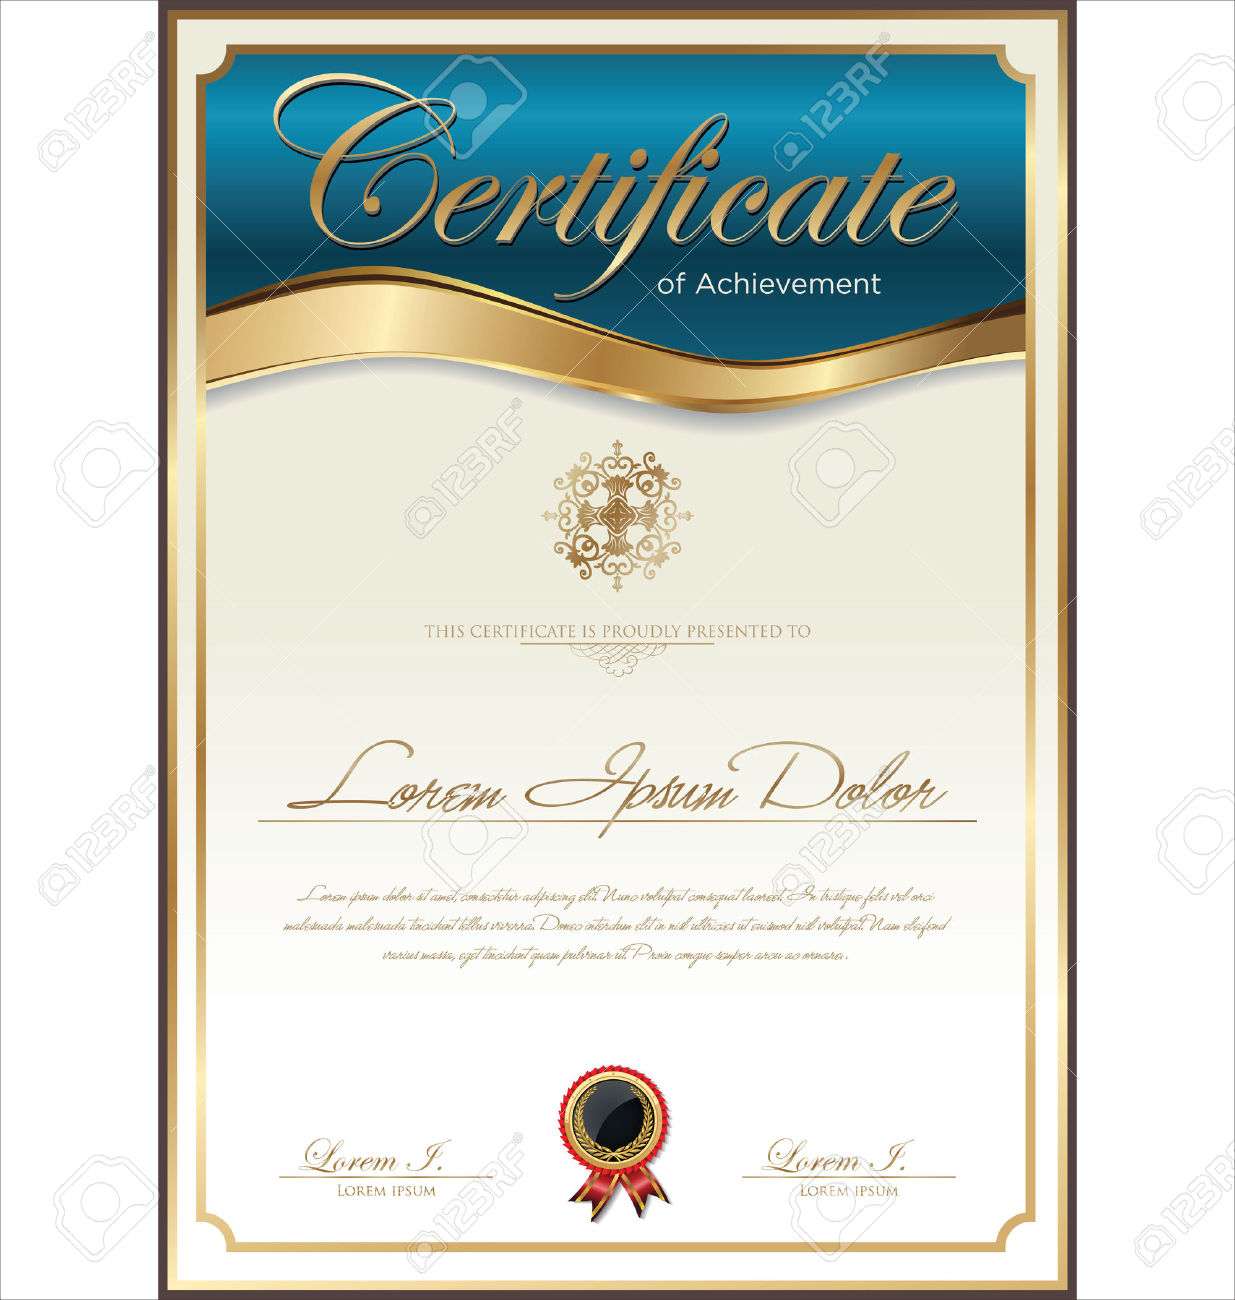 Certificate templates fotolip rich image and wallpaper certificate templates alramifo Image collections